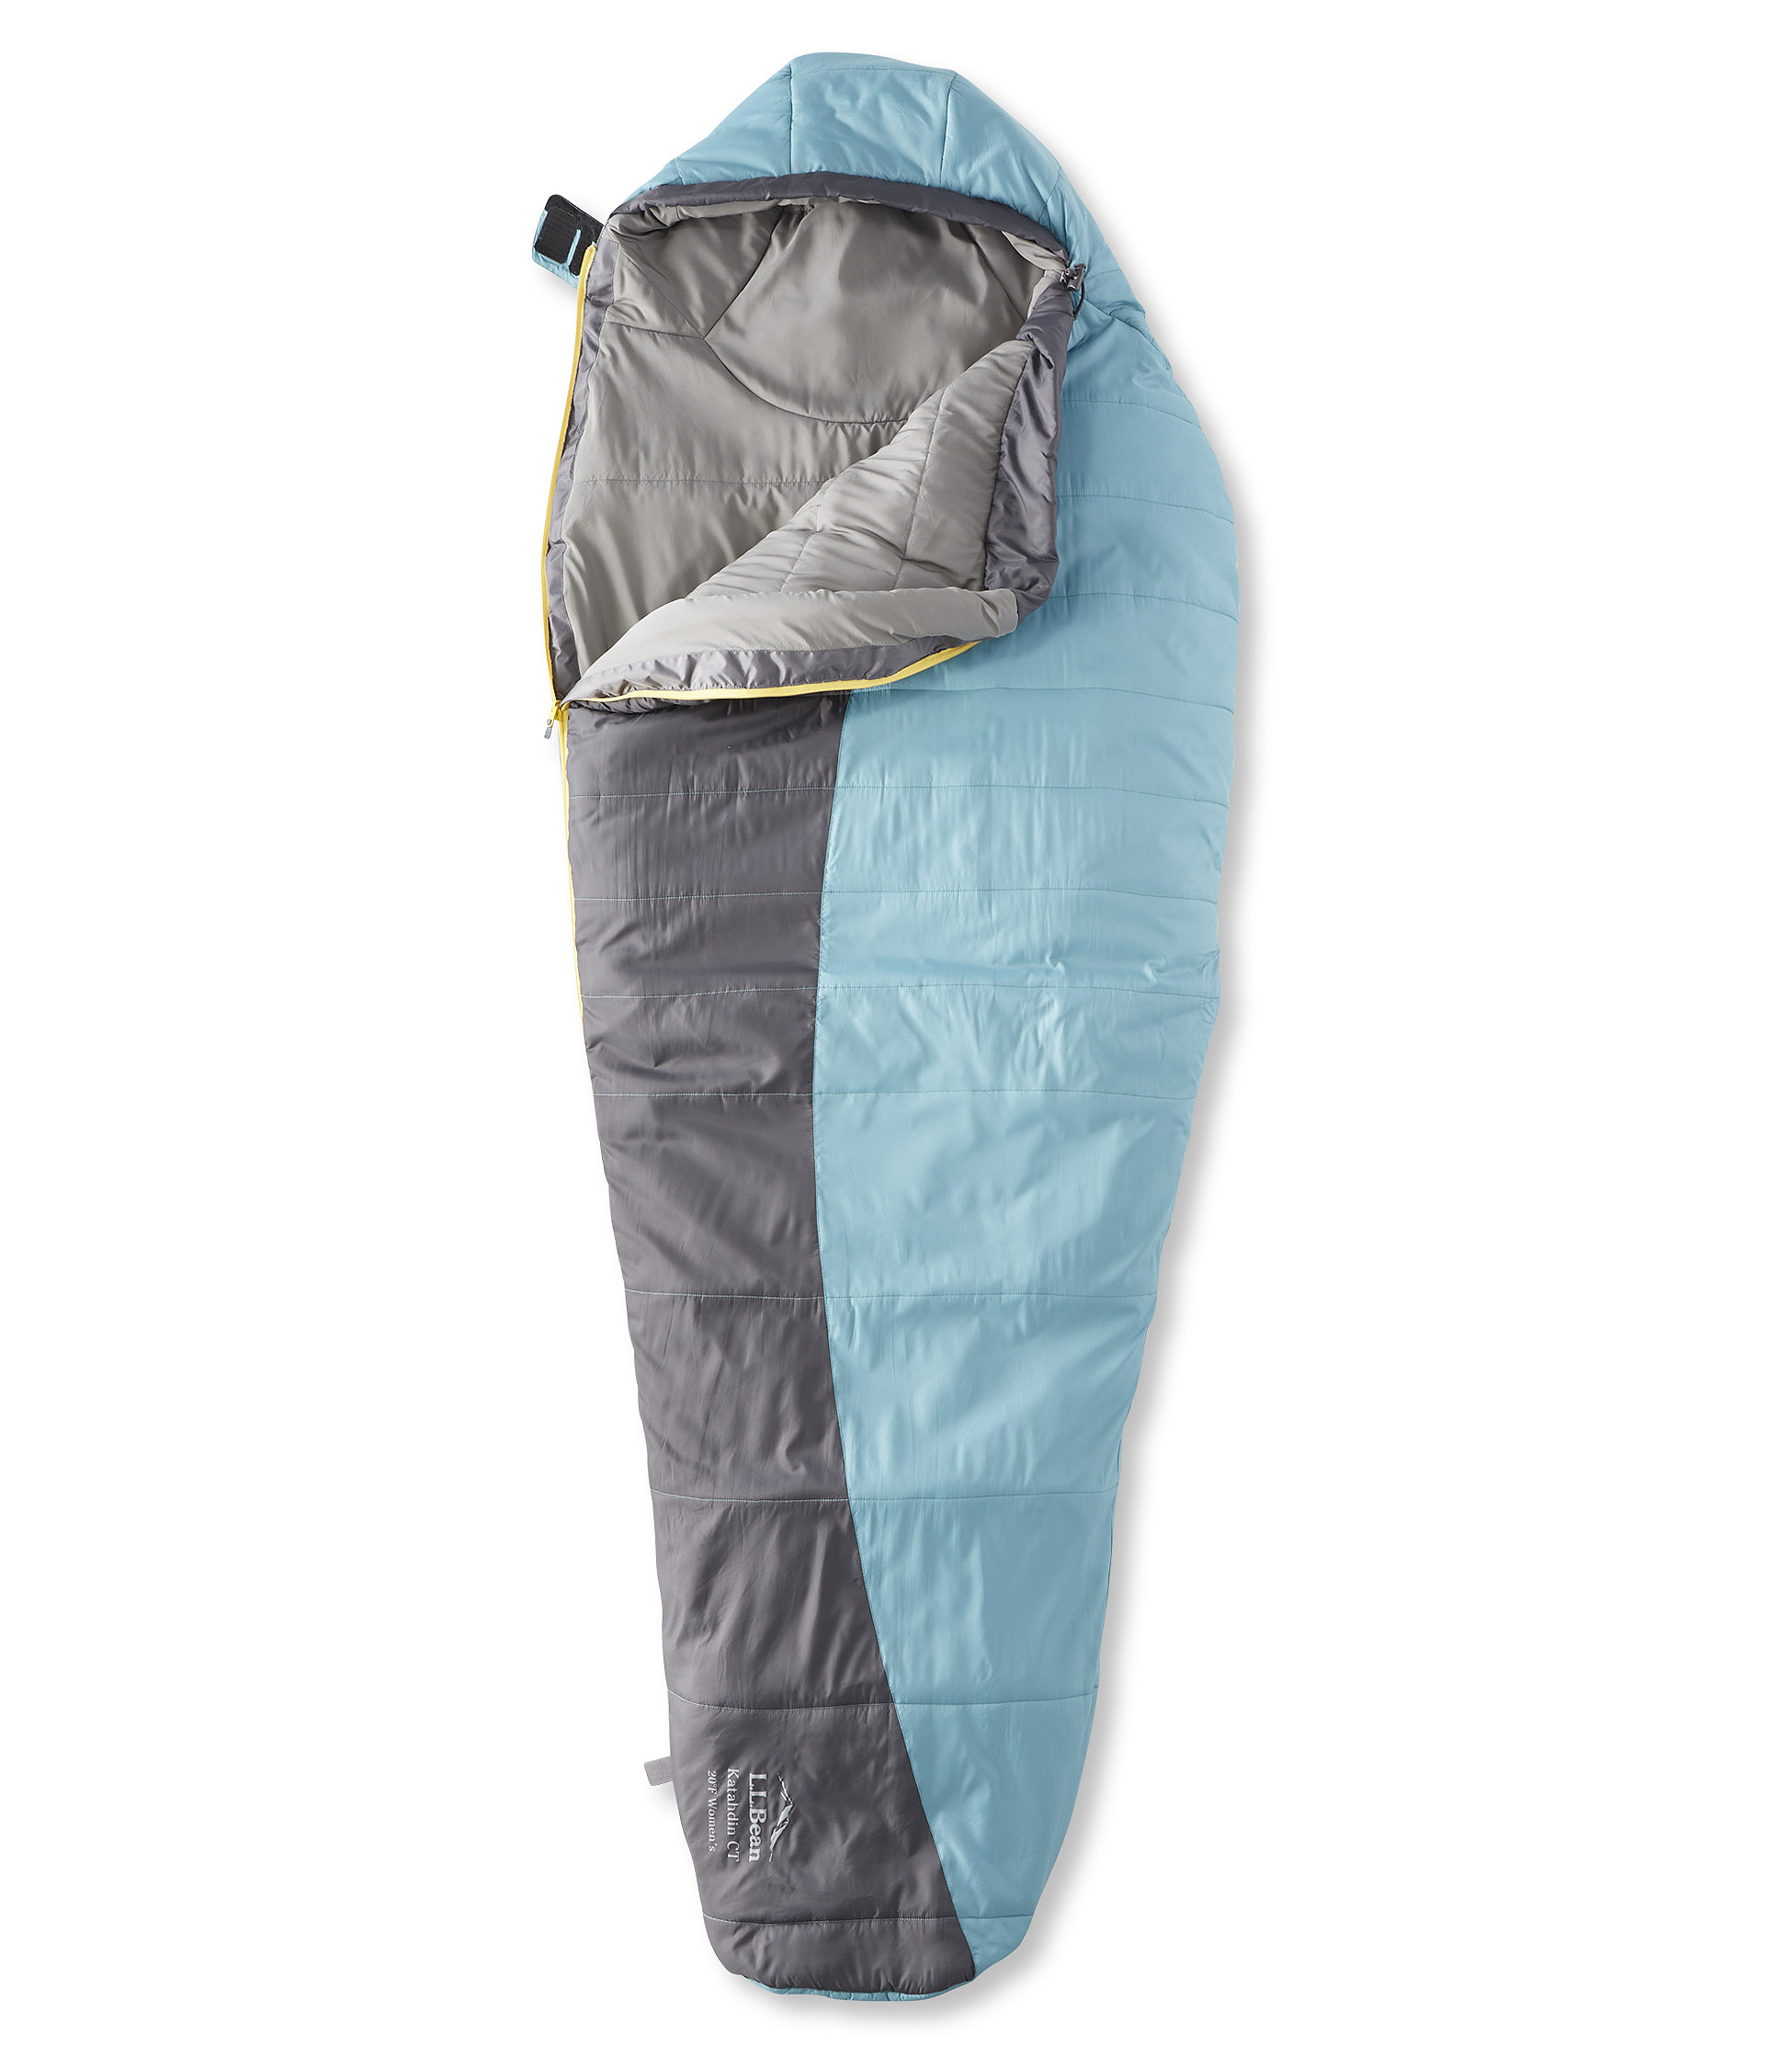 L.L.Bean Katahdin CT Sleeping Bag with Celliant, Mummy 20°